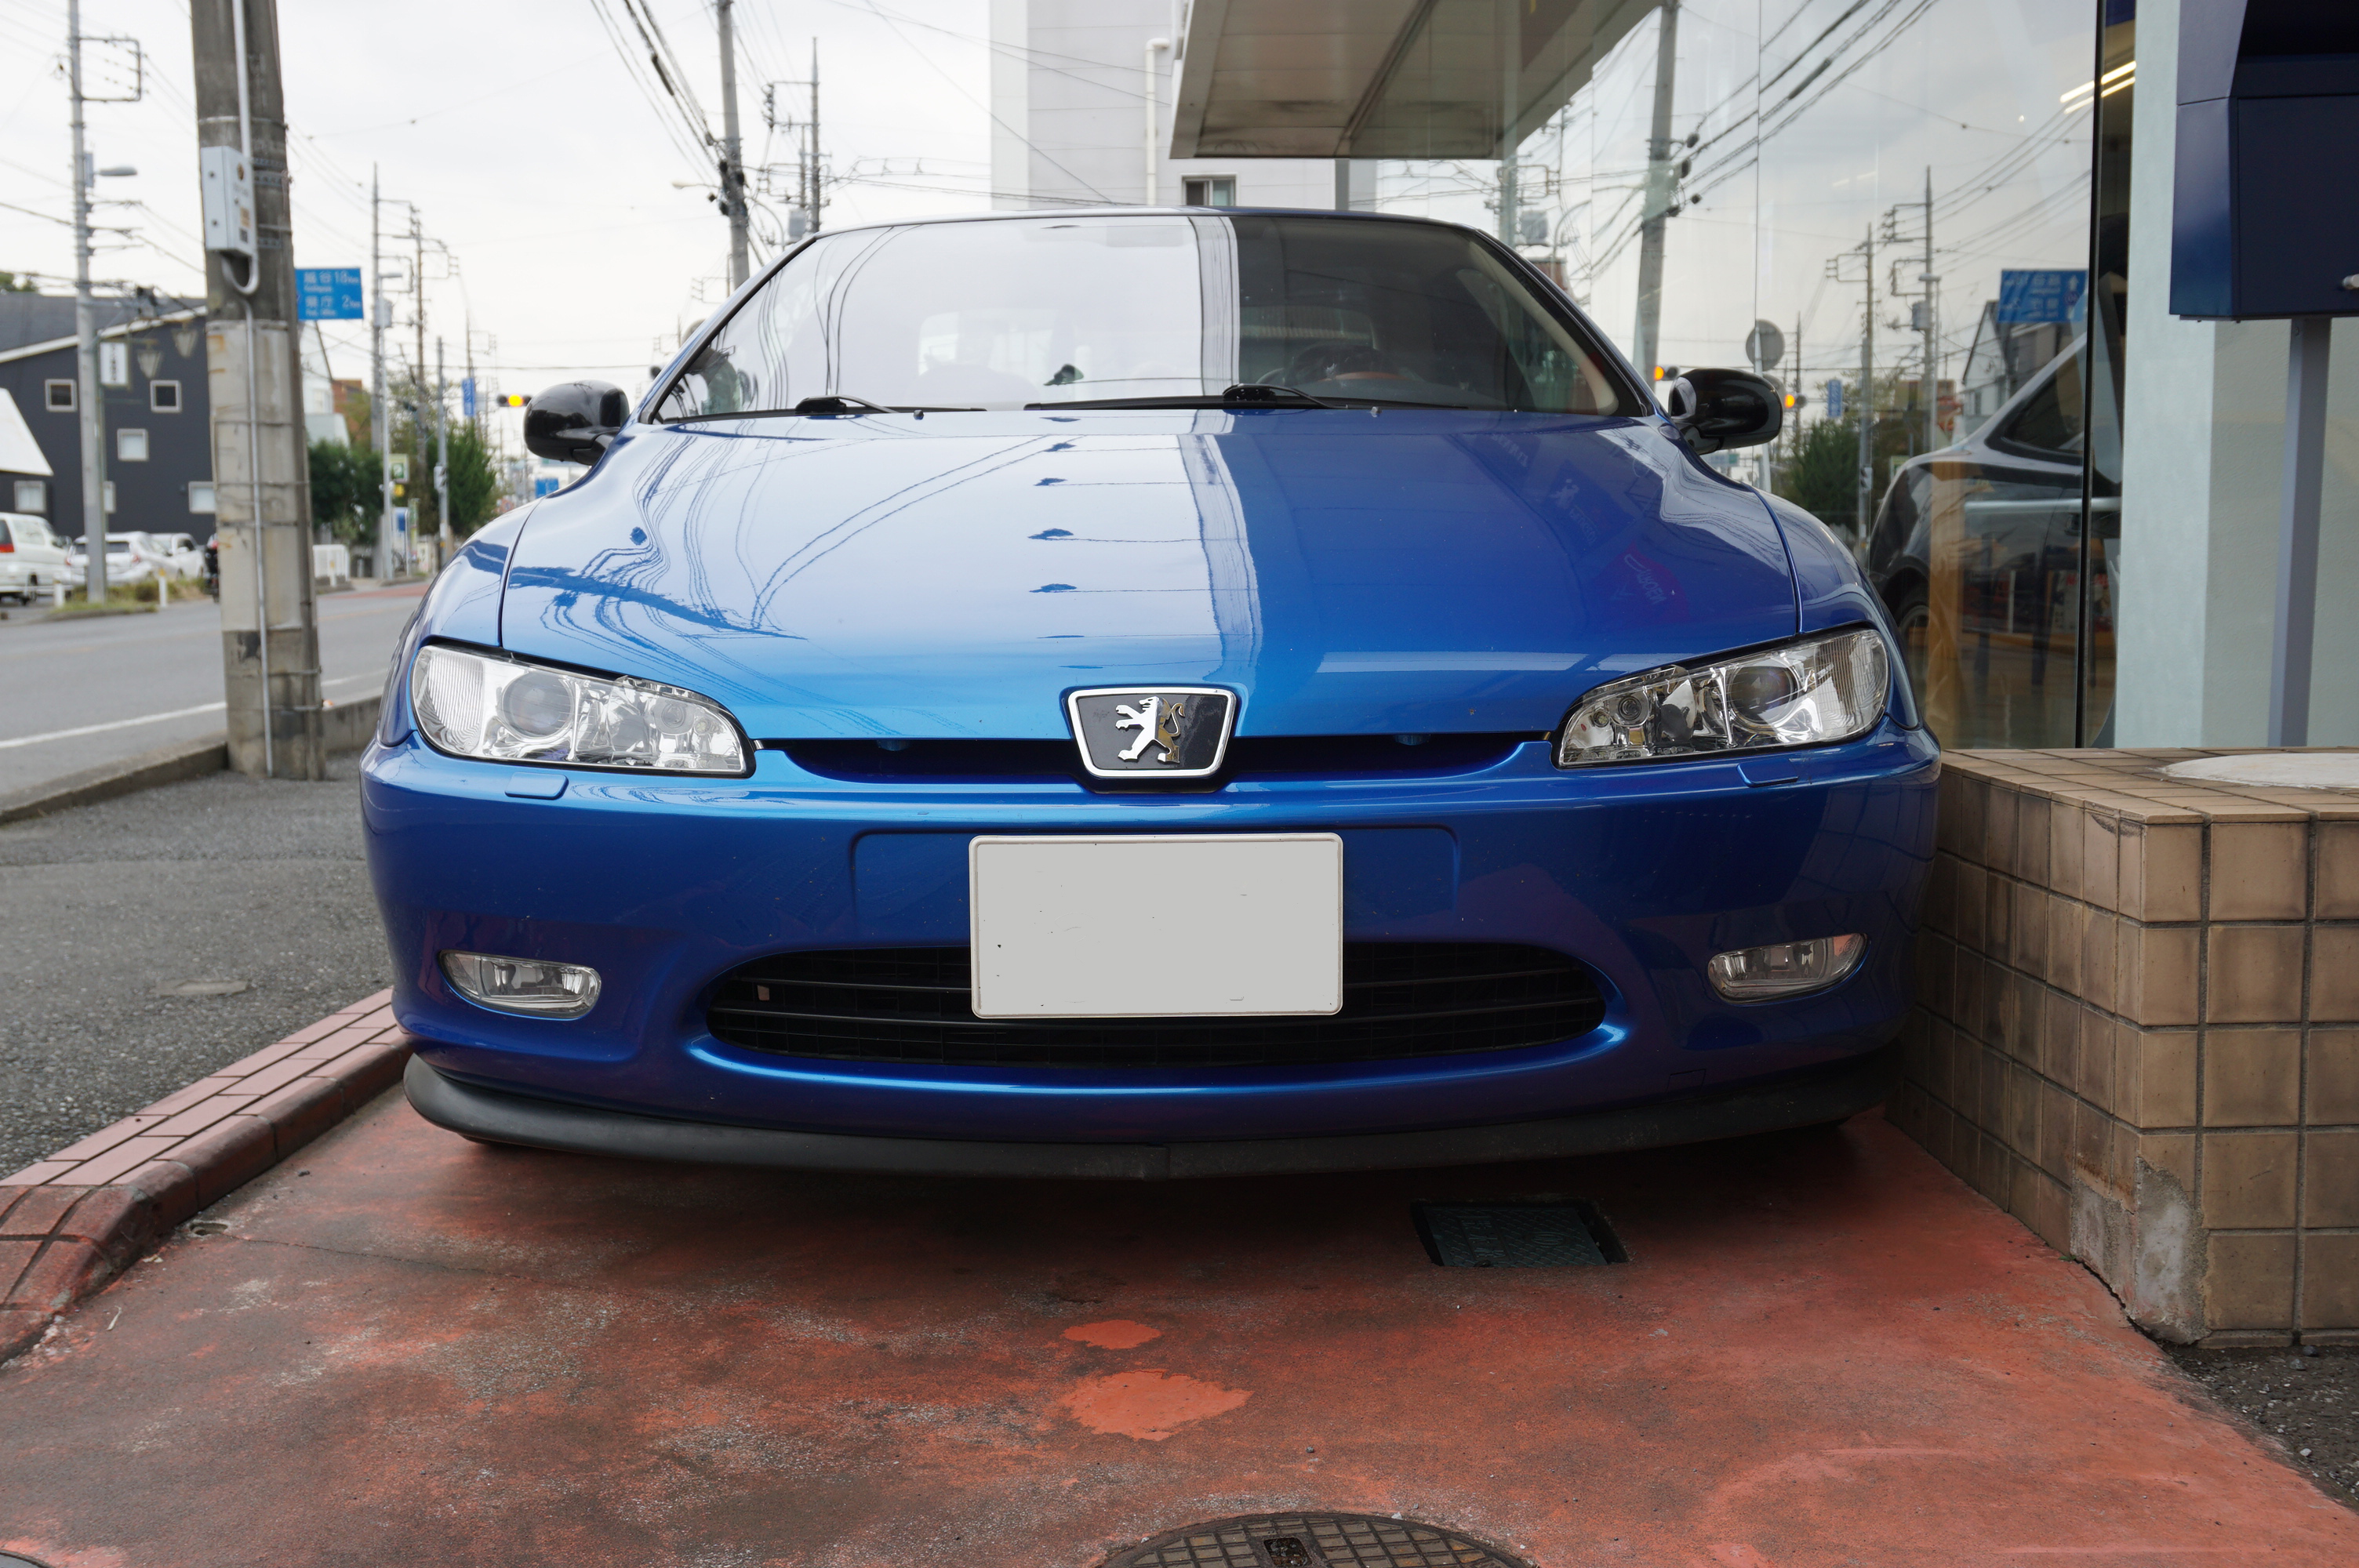 PEUGEOT 406coupe 5M/Tの画像